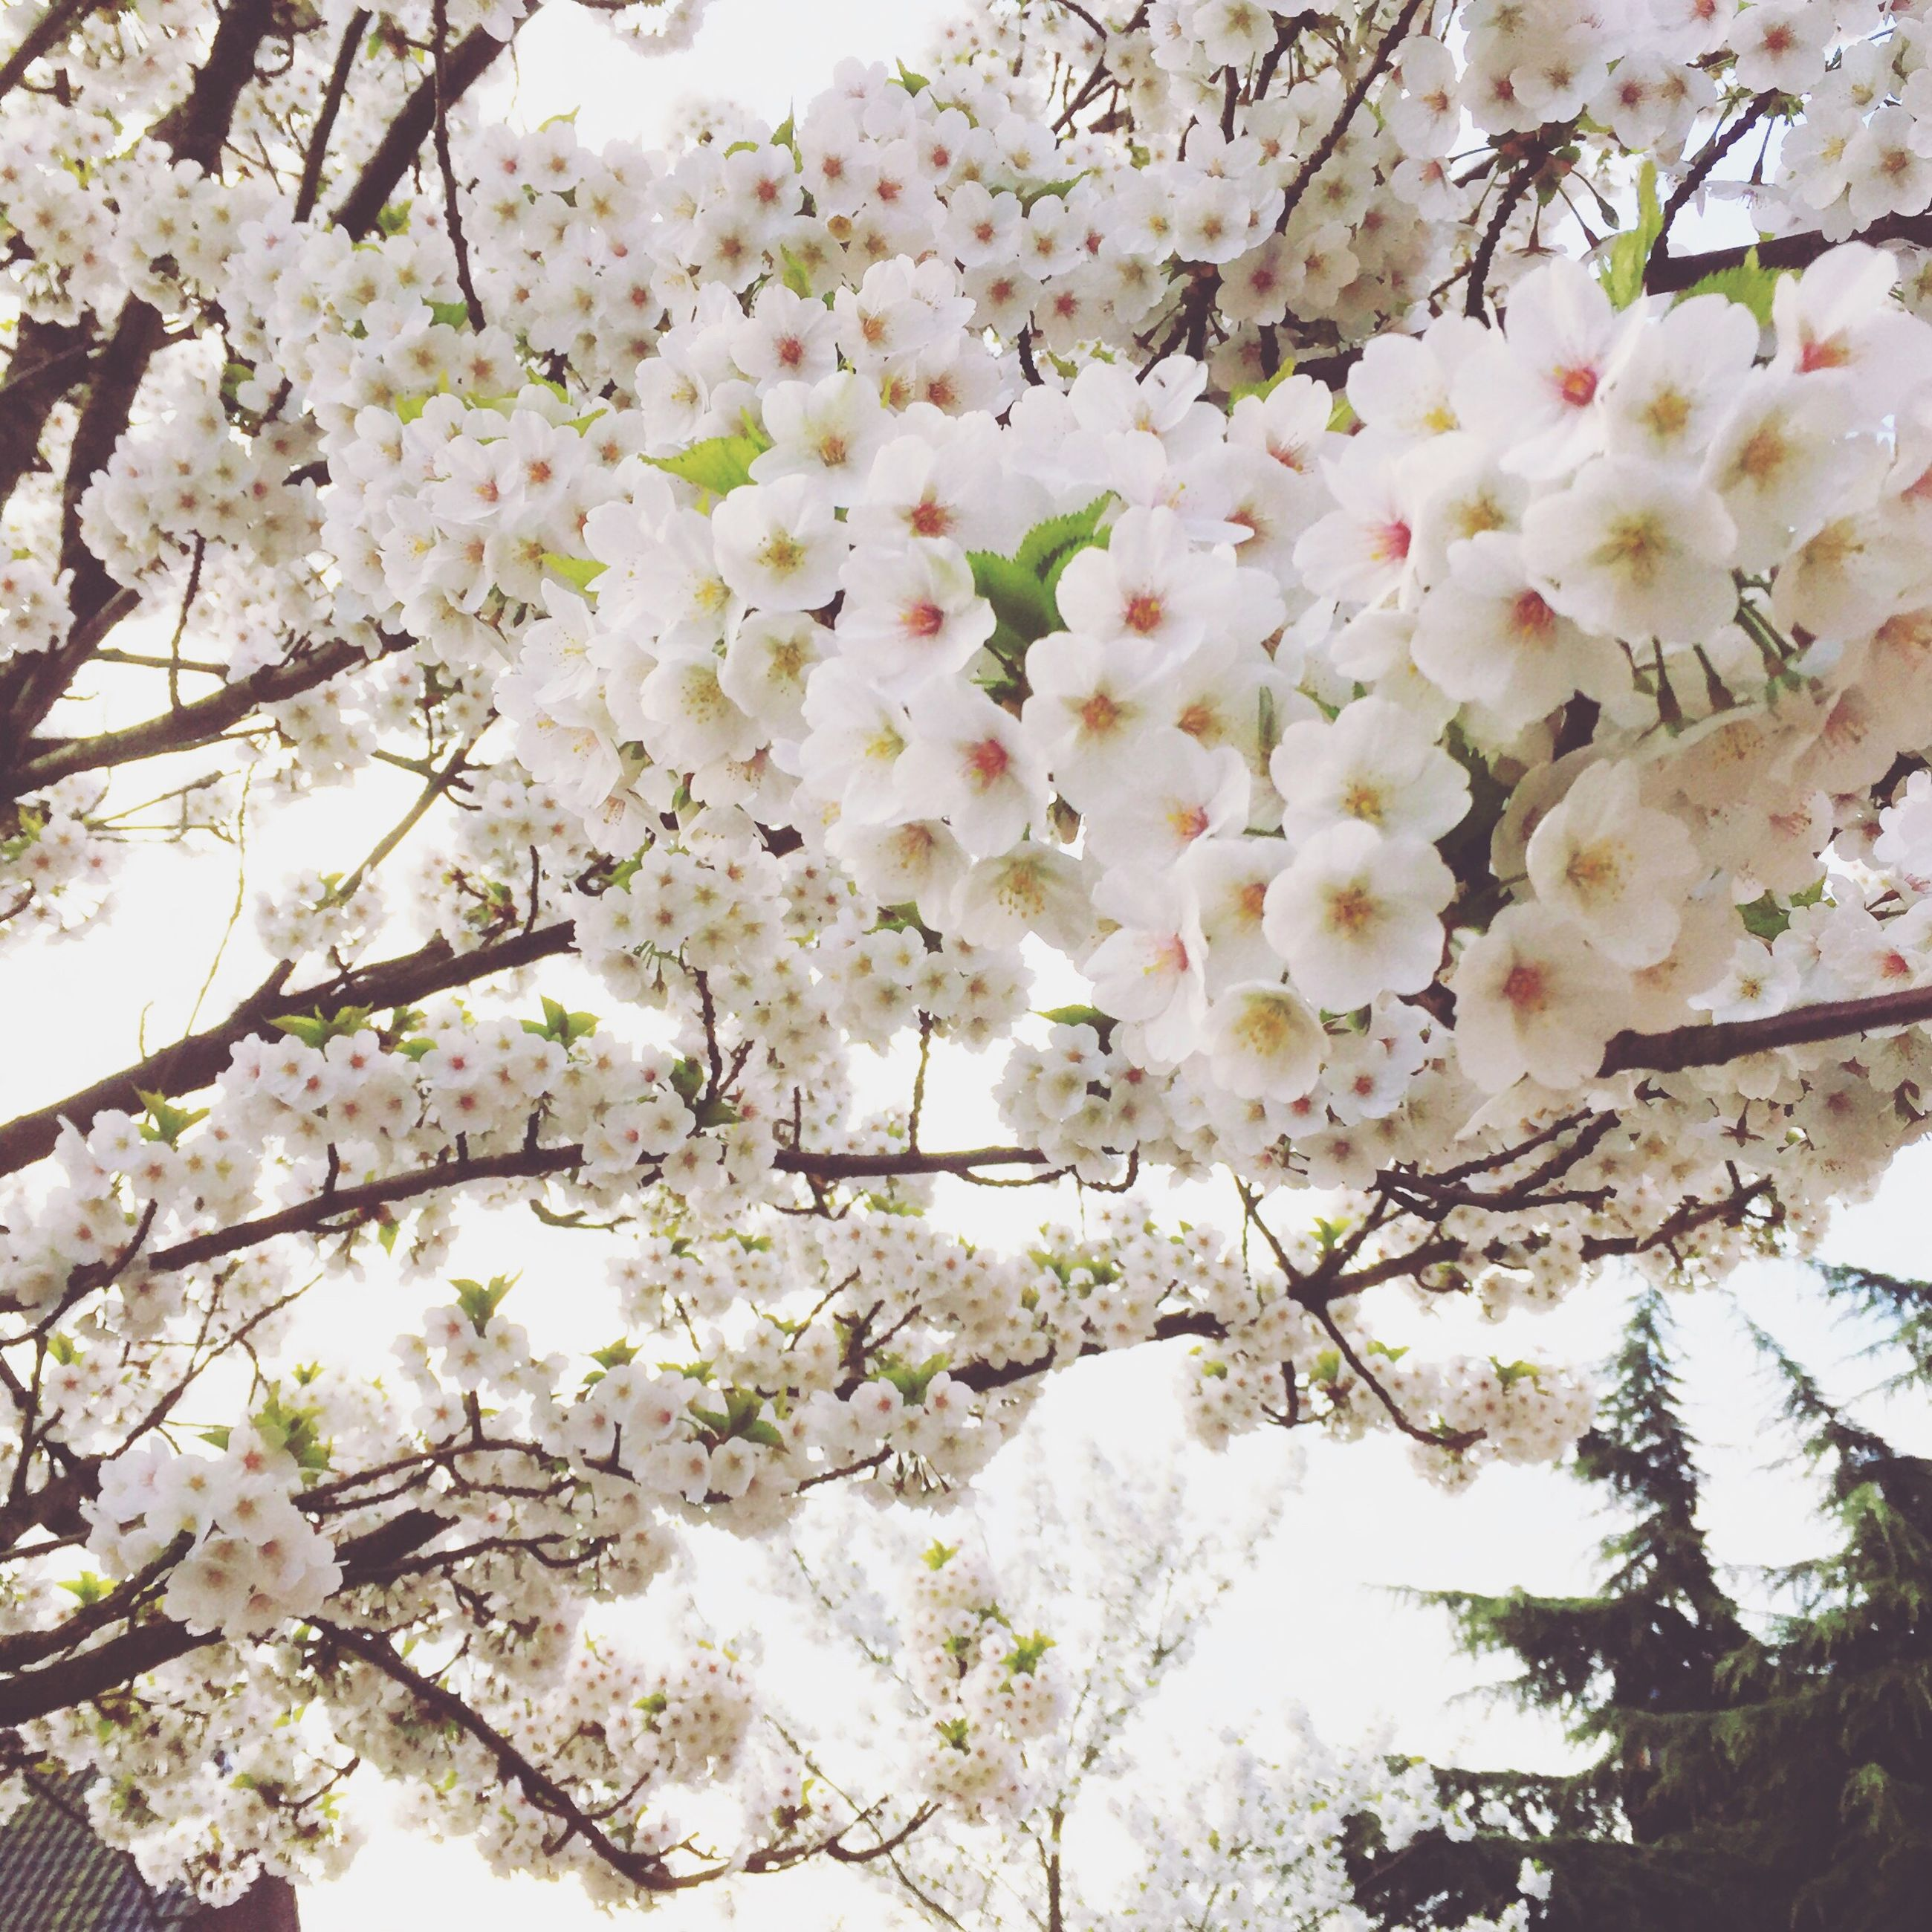 growth, tree, nature, flower, springtime, blossom, beauty in nature, freshness, branch, fragility, no people, outdoors, low angle view, close-up, day, cherry tree, flower head